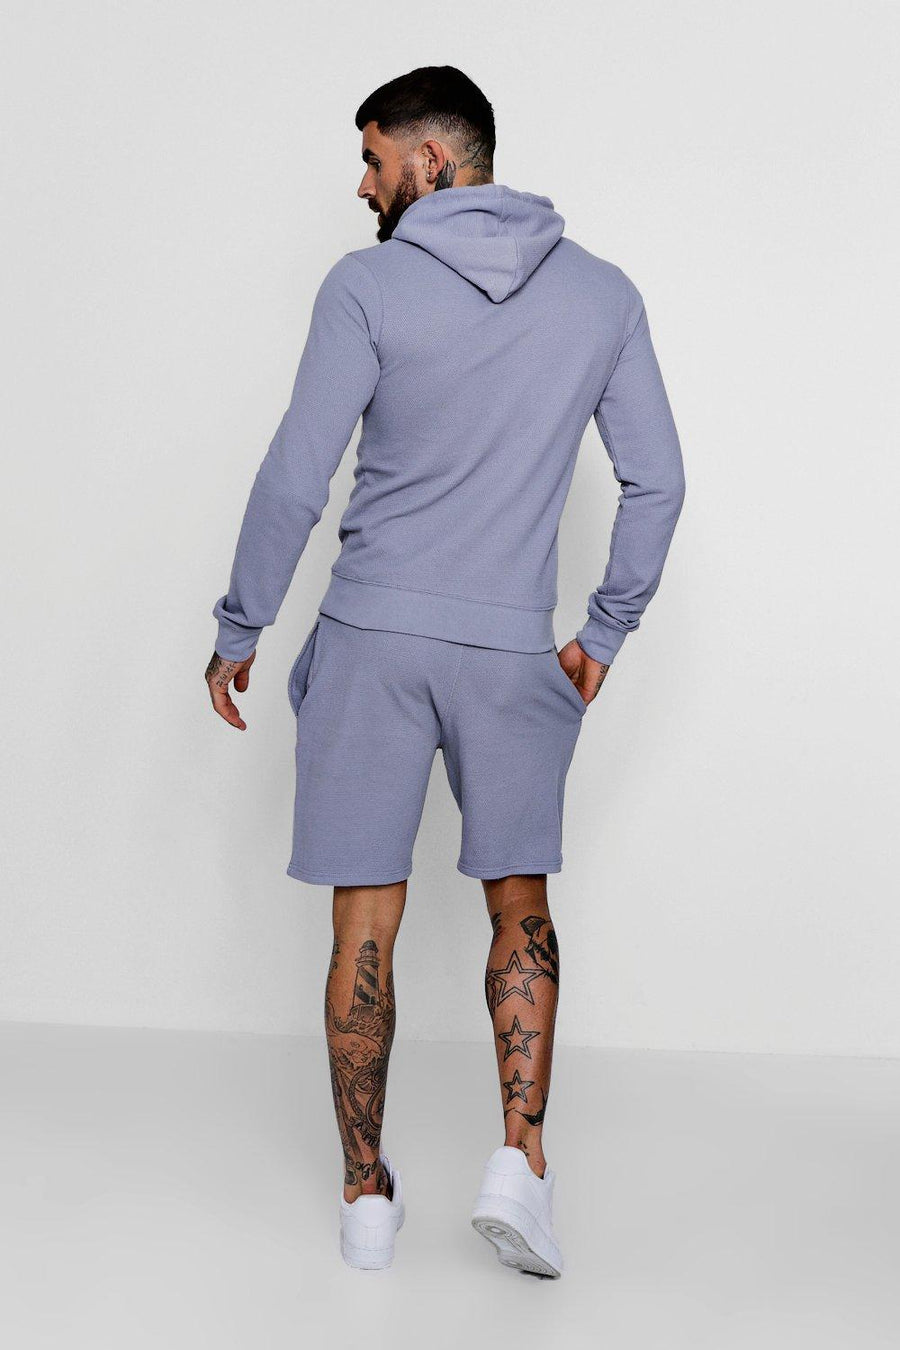 BLUE PIQUE HOODED SHORT TRACKSUIT FOR TROPICAL WEATHER